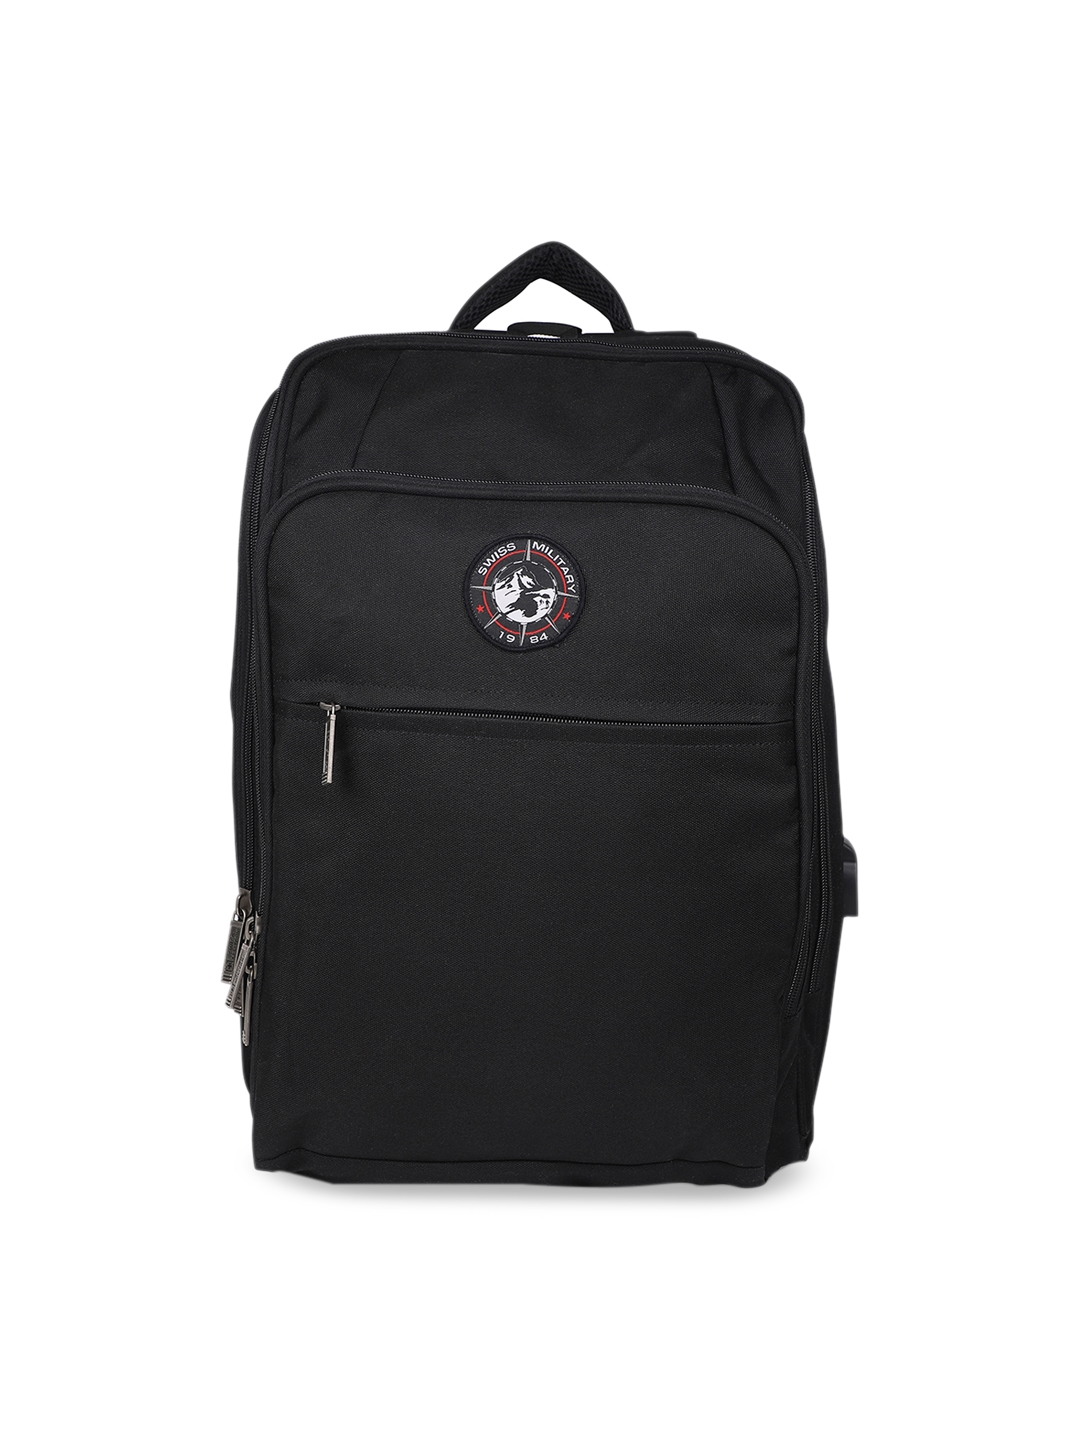 SWISS MILITARY Unisex Black Solid Laptop Backpack